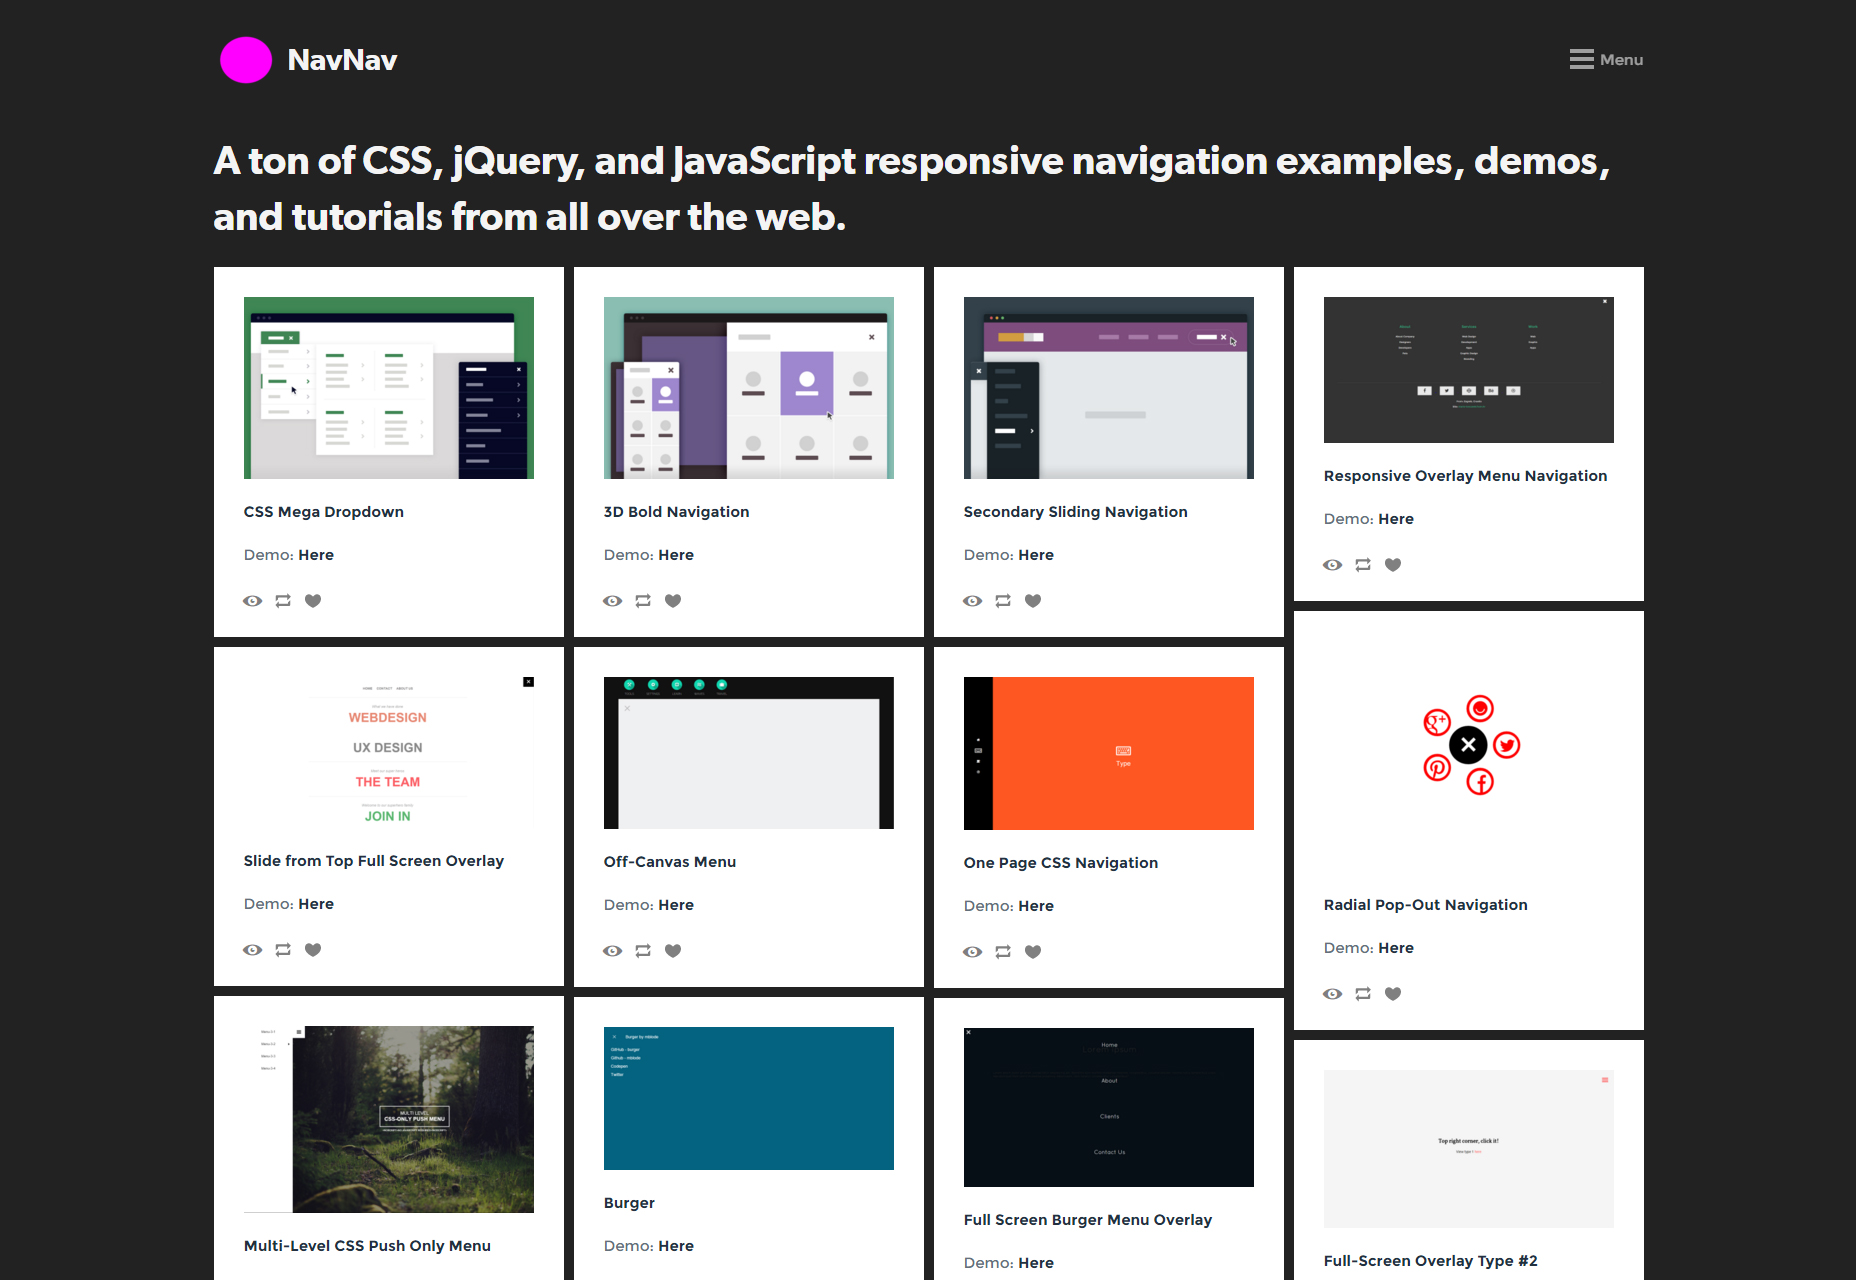 navnav-responsive-navigation-bar-menu-resources